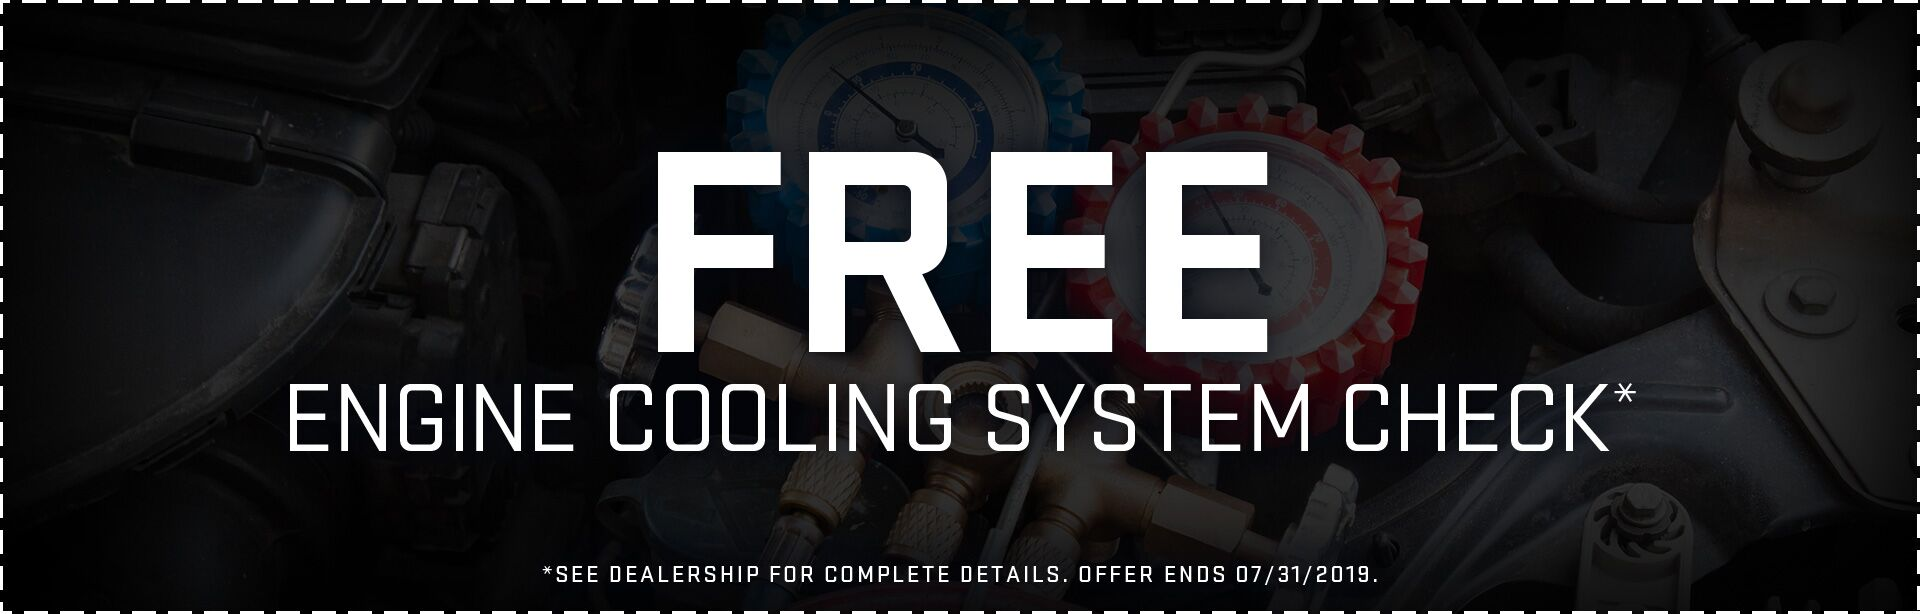 Free Engine Cooling System Check